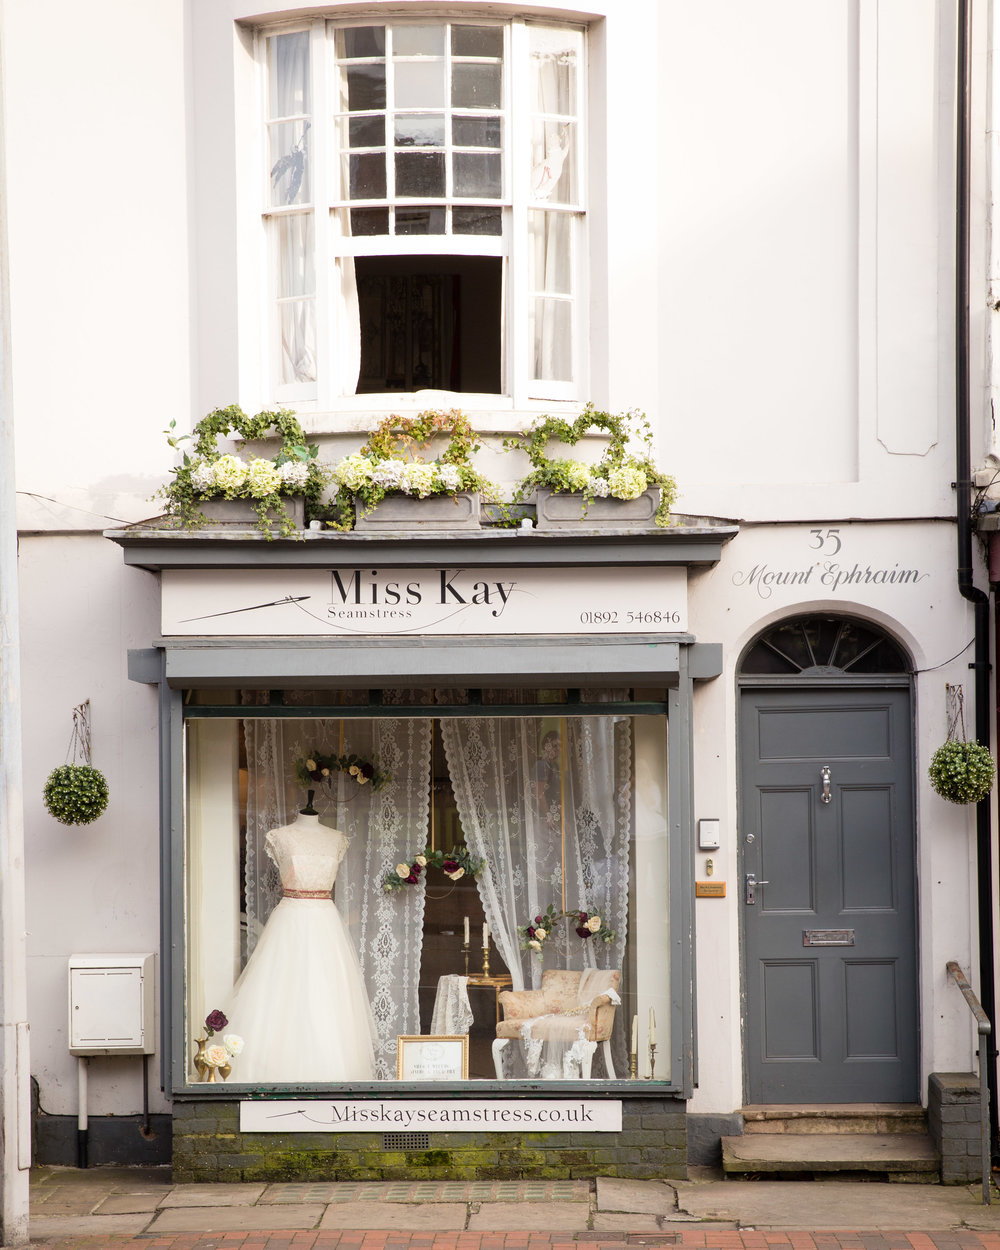 Vintage Amy Window Styling-Vintage Bridal Boutique-Stylist Kent-Wedding Styling and Prop Hire